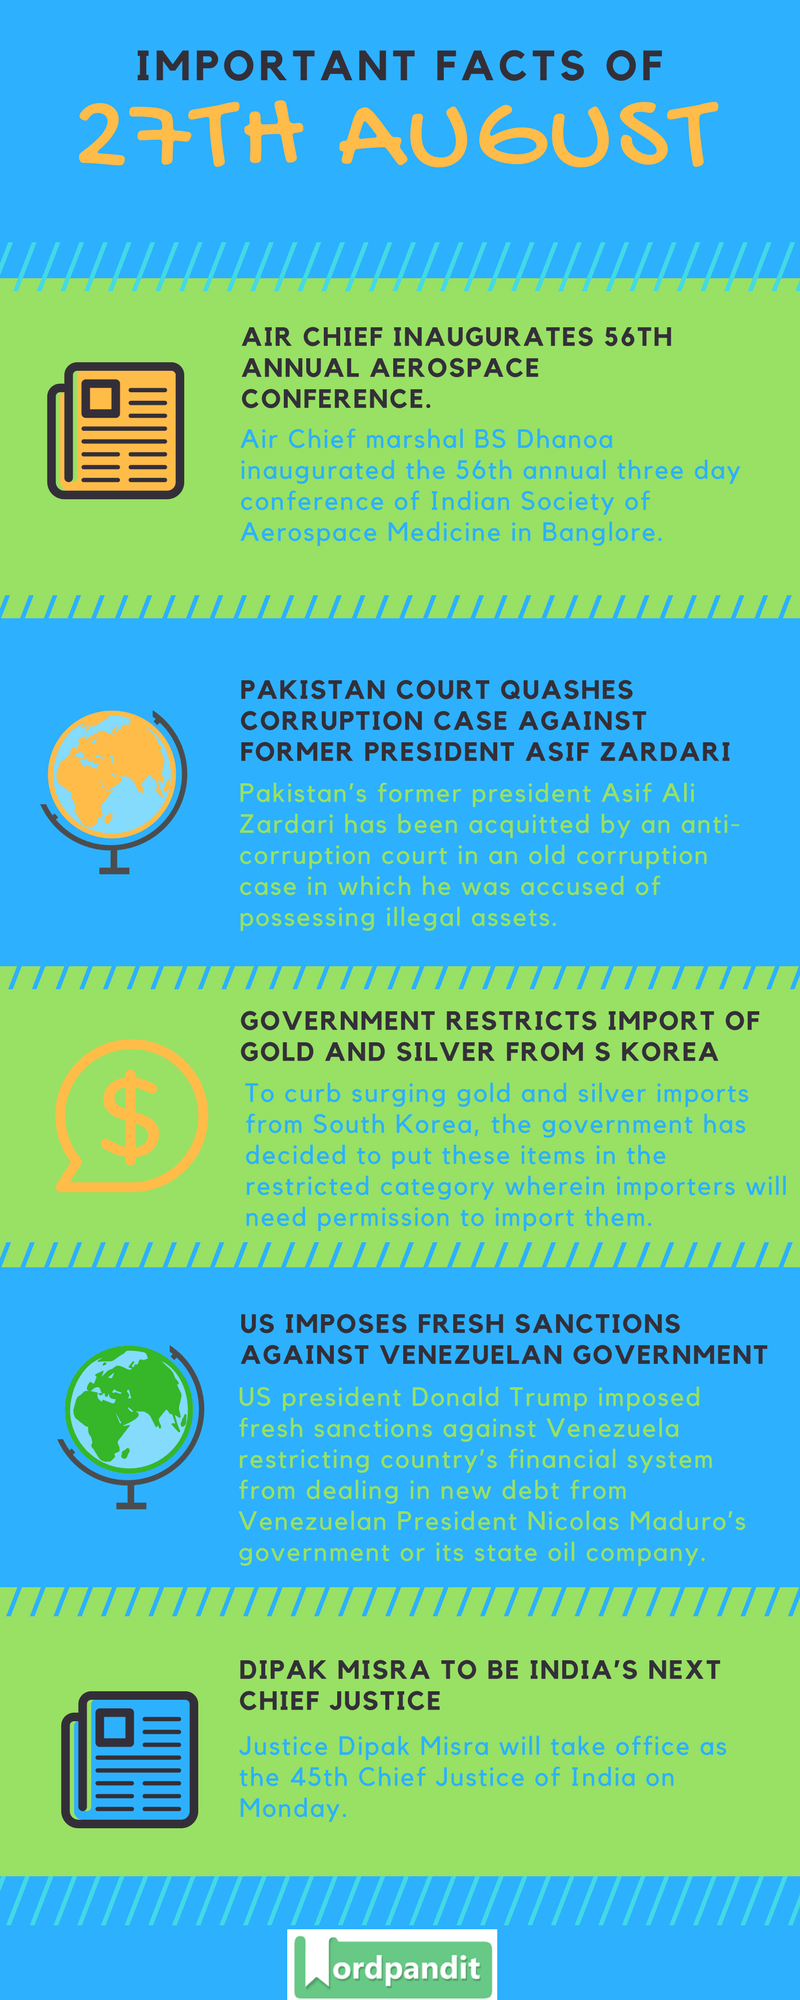 Daily-Current-Affairs-27-august-2017-Current-Affairs-Quiz-august-27-2017-Current-Affairs-Infographic